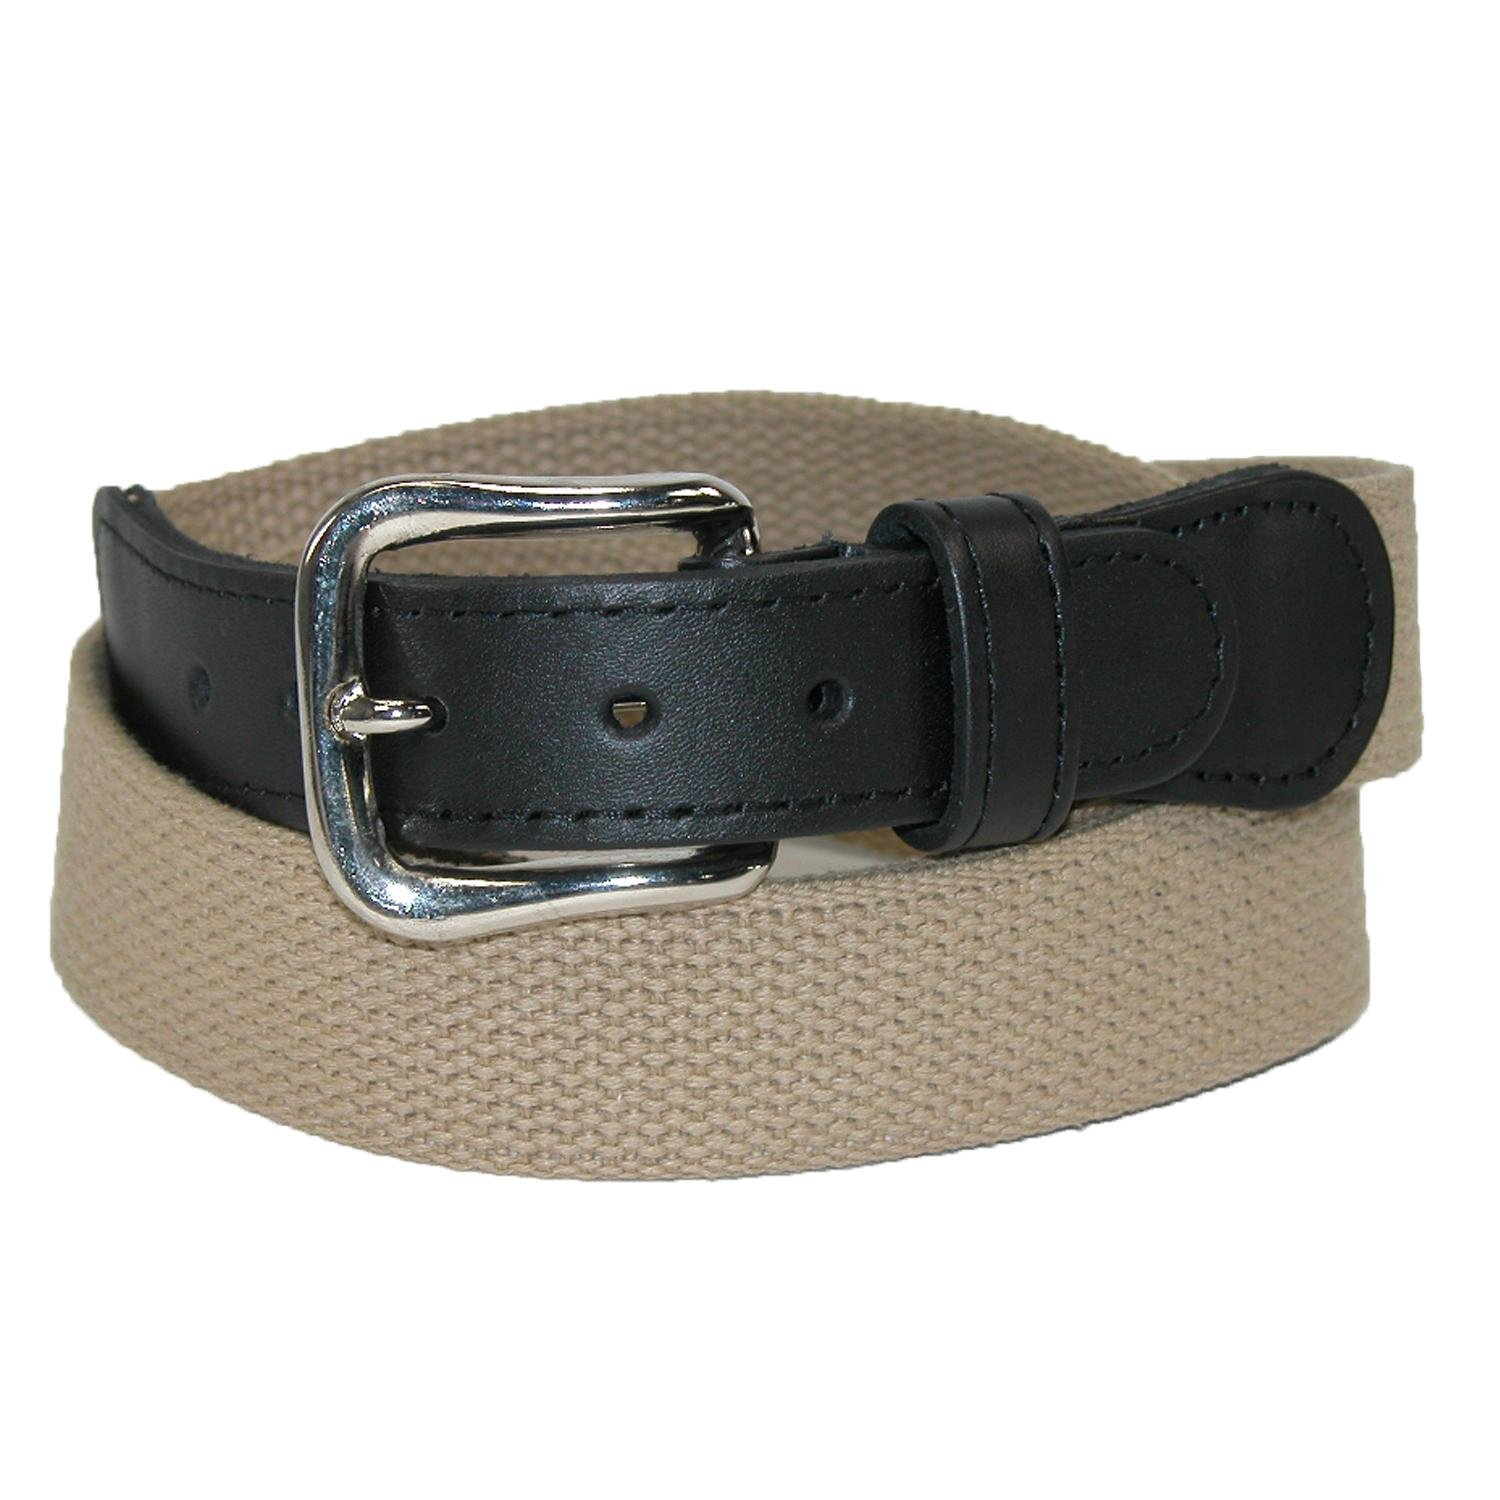 Boston Leather Mens Big /& Tall Cotton Web Belt with Leather Tabs